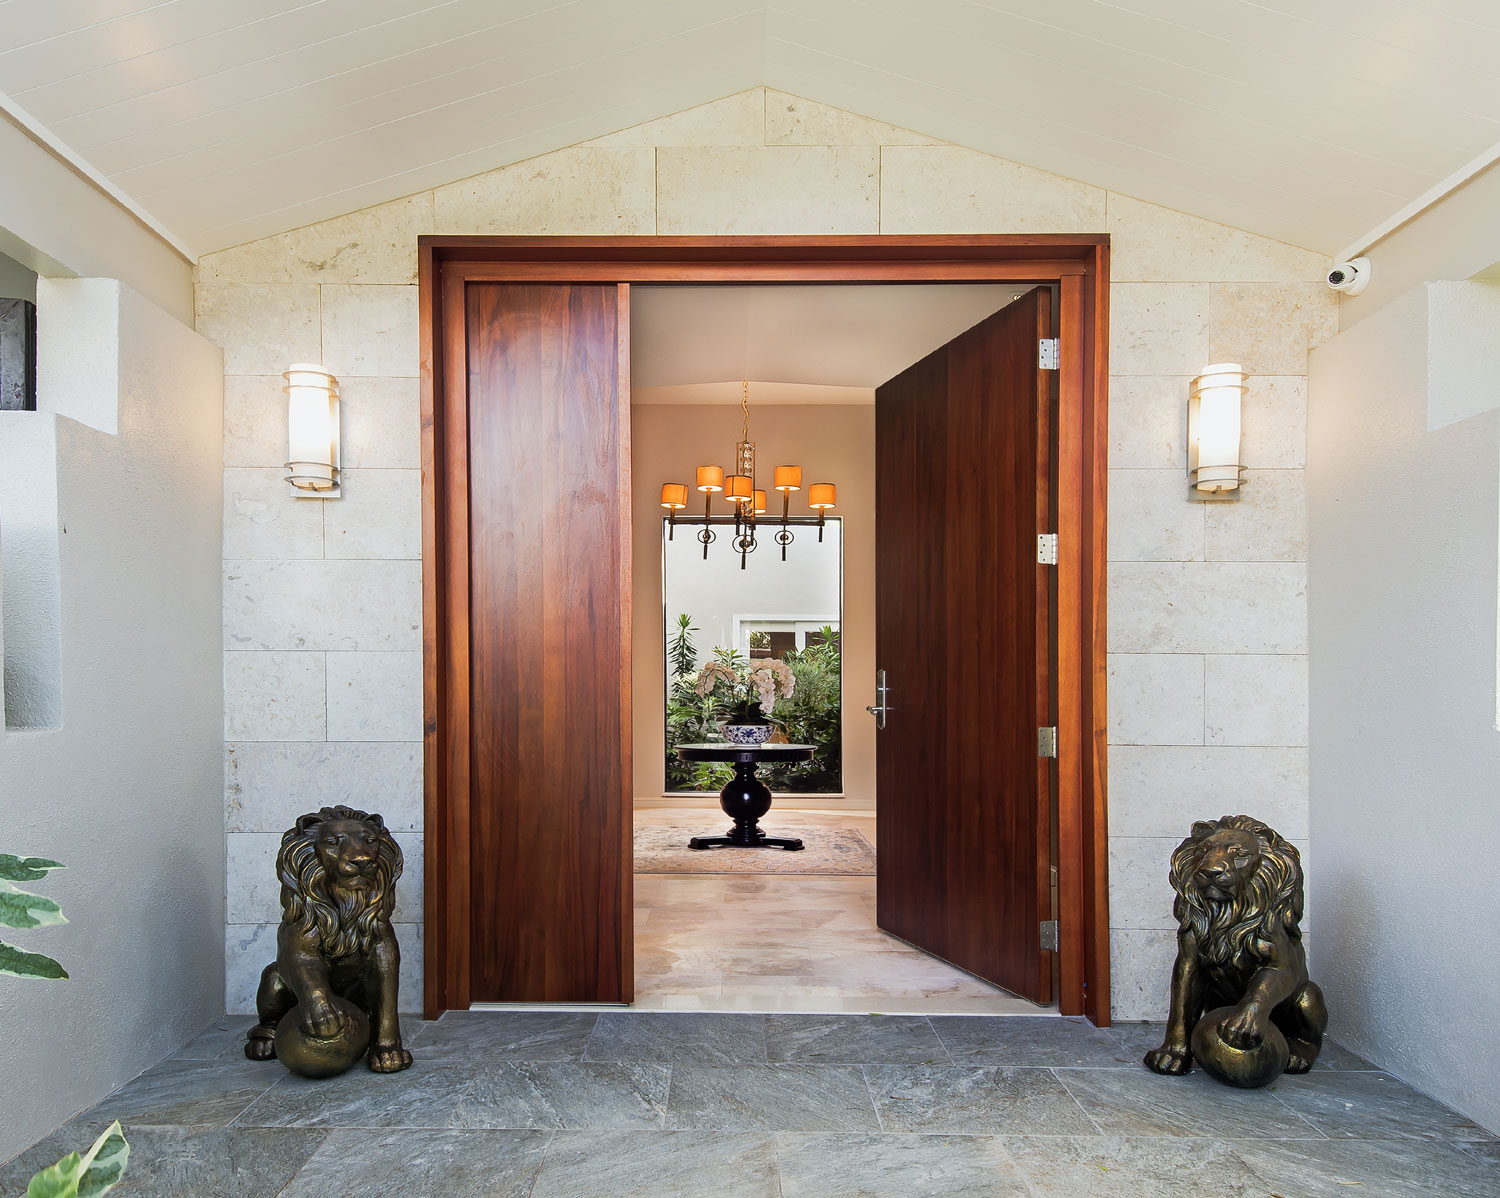 State-of-the-art lighting, exquisite materials, and designer amenities are among the highlights of this modern Hawaiian villa.